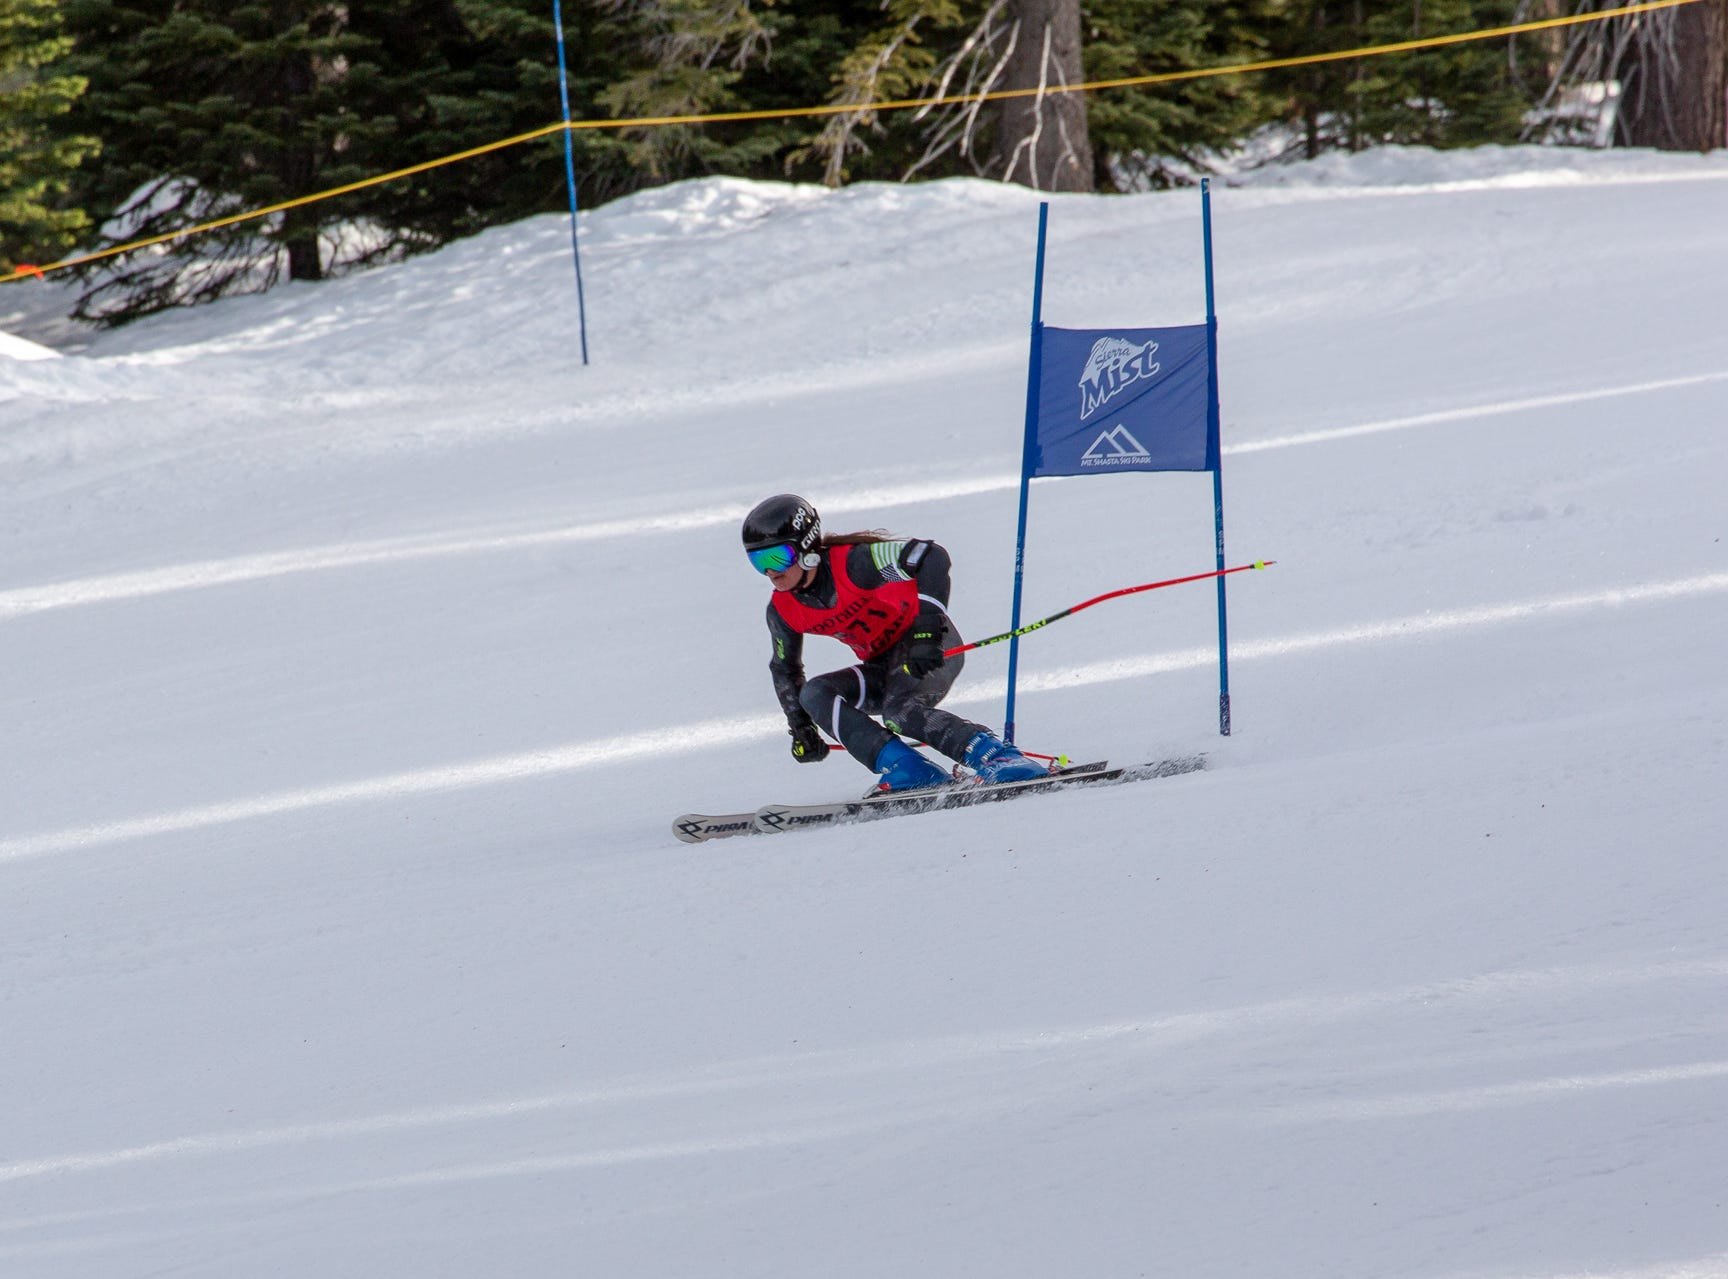 Cooper Laloli of Foothill races in the third high school ski meet of 2019 on Monday, Jan. 28 at Mt. Shasta Ski Park.